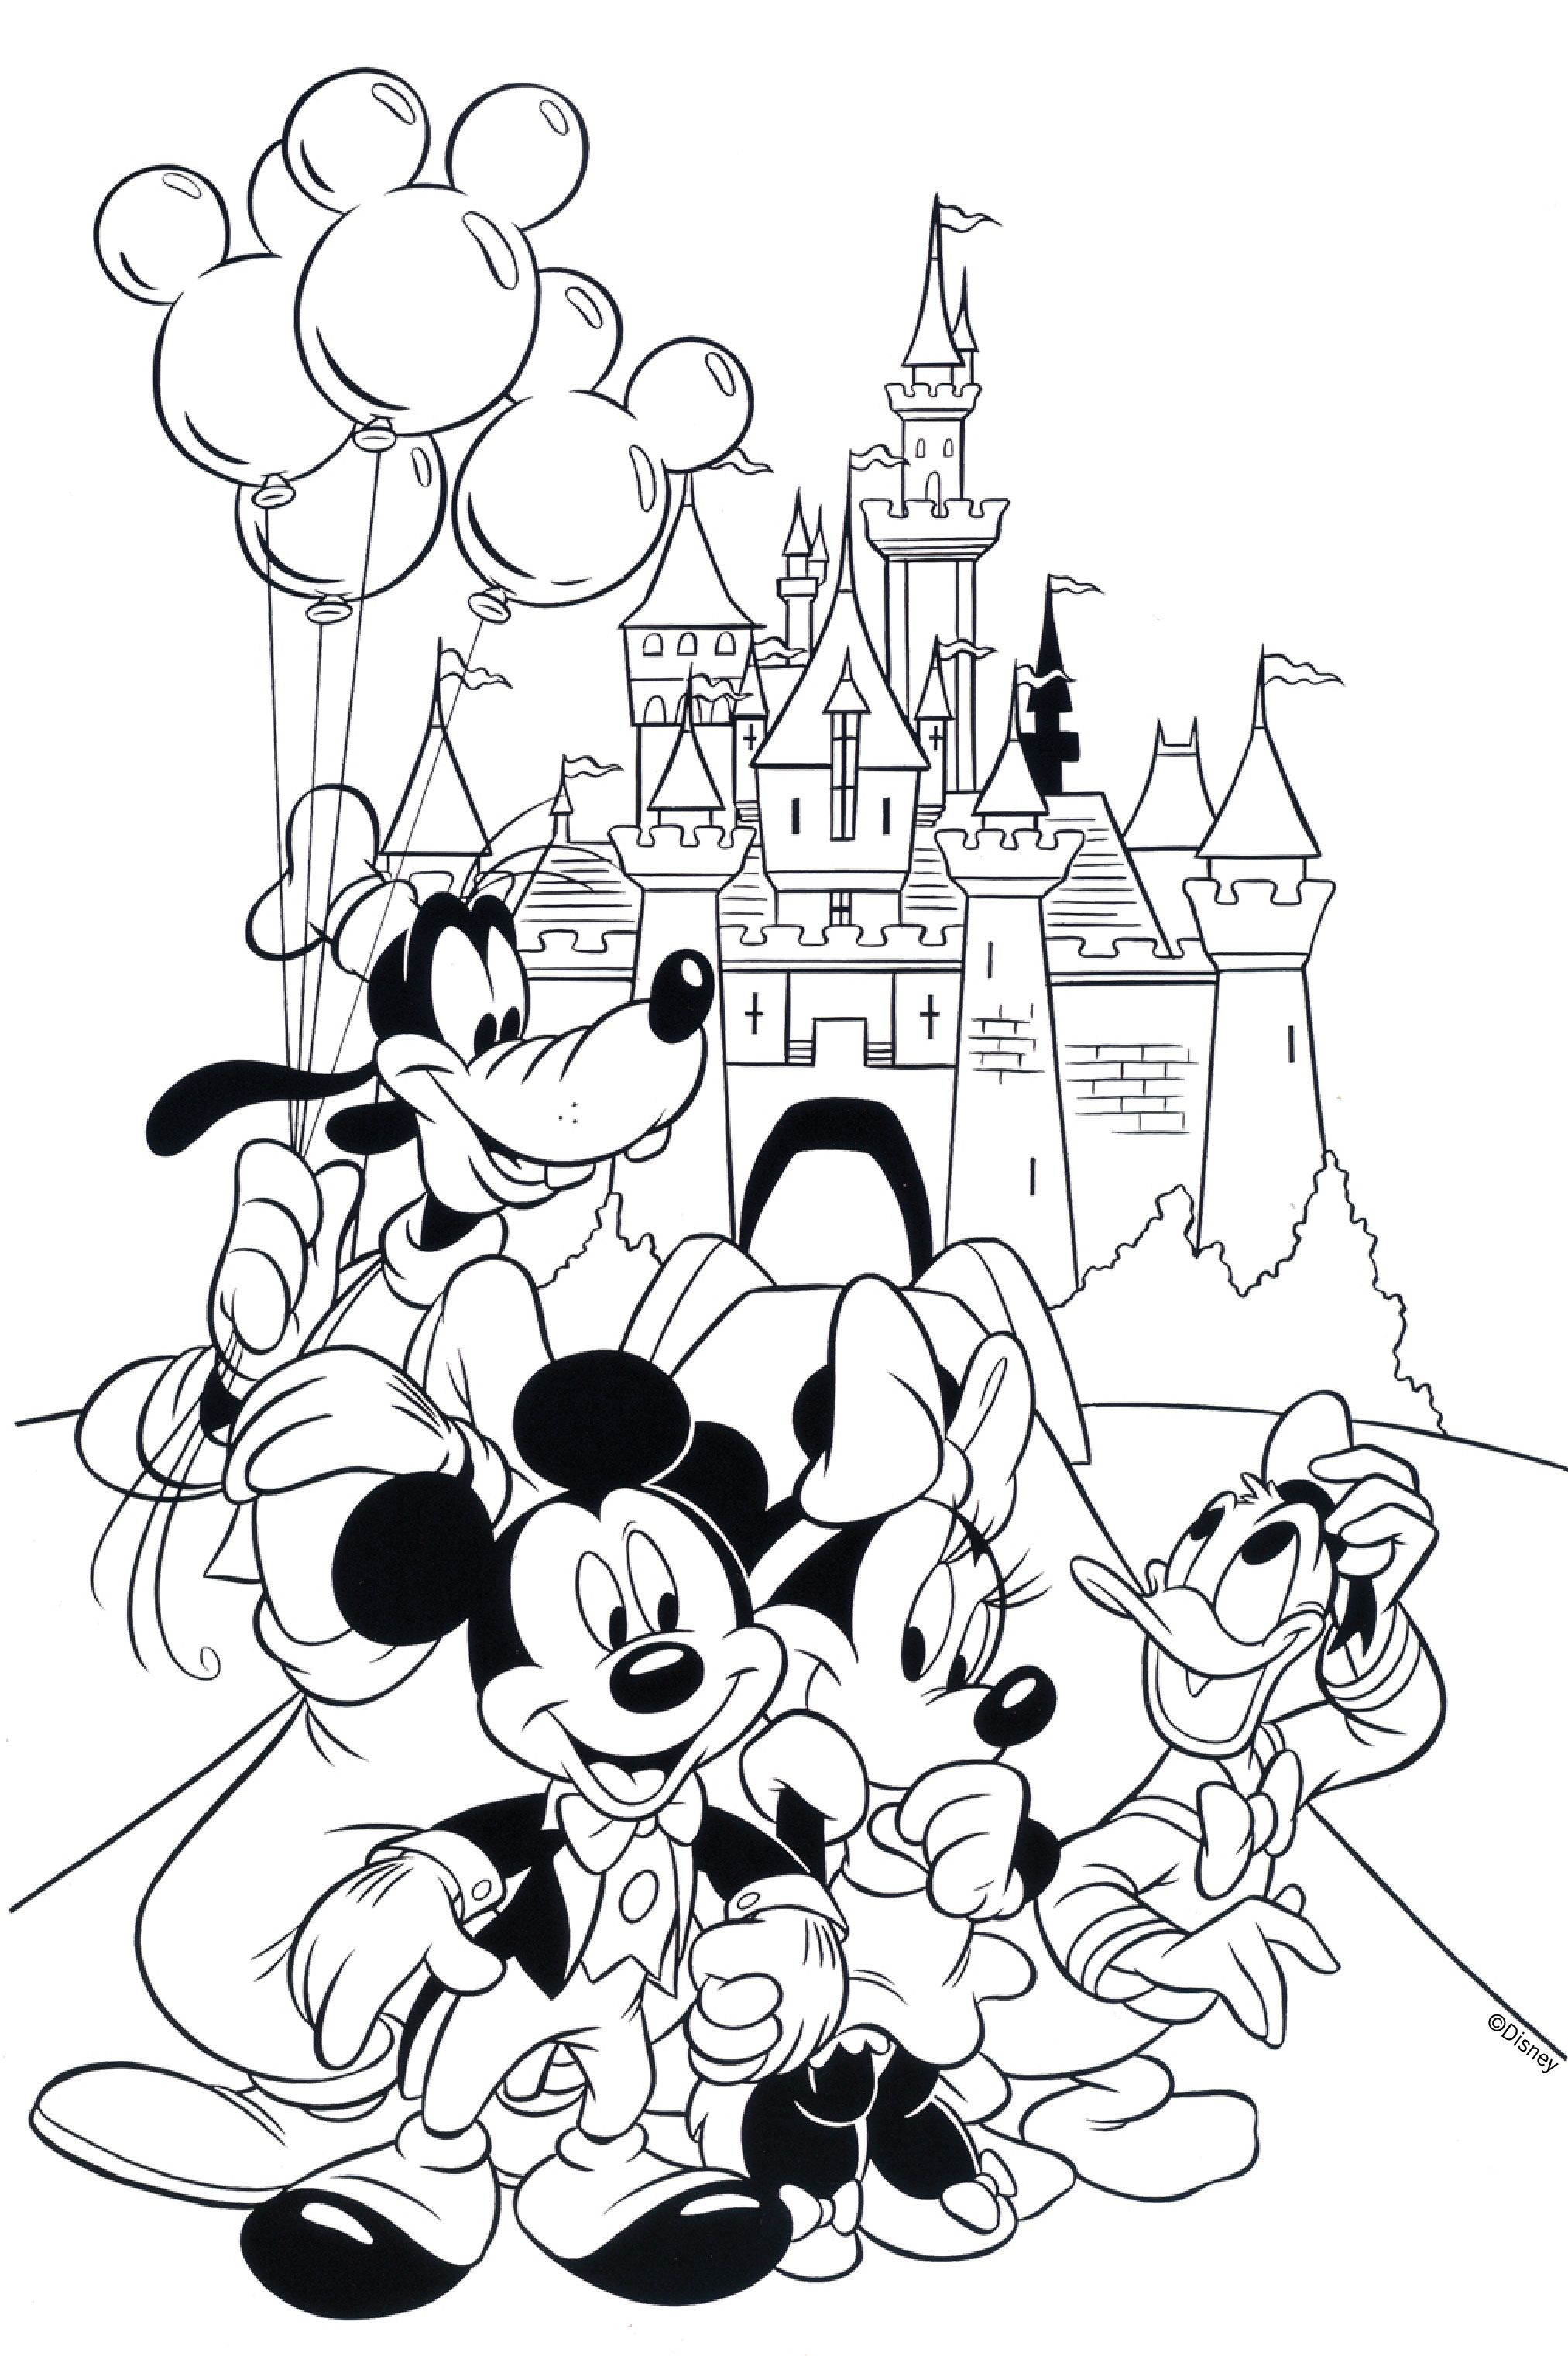 55 Top Printable Coloring Pages Of Disney Images & Pictures In HD